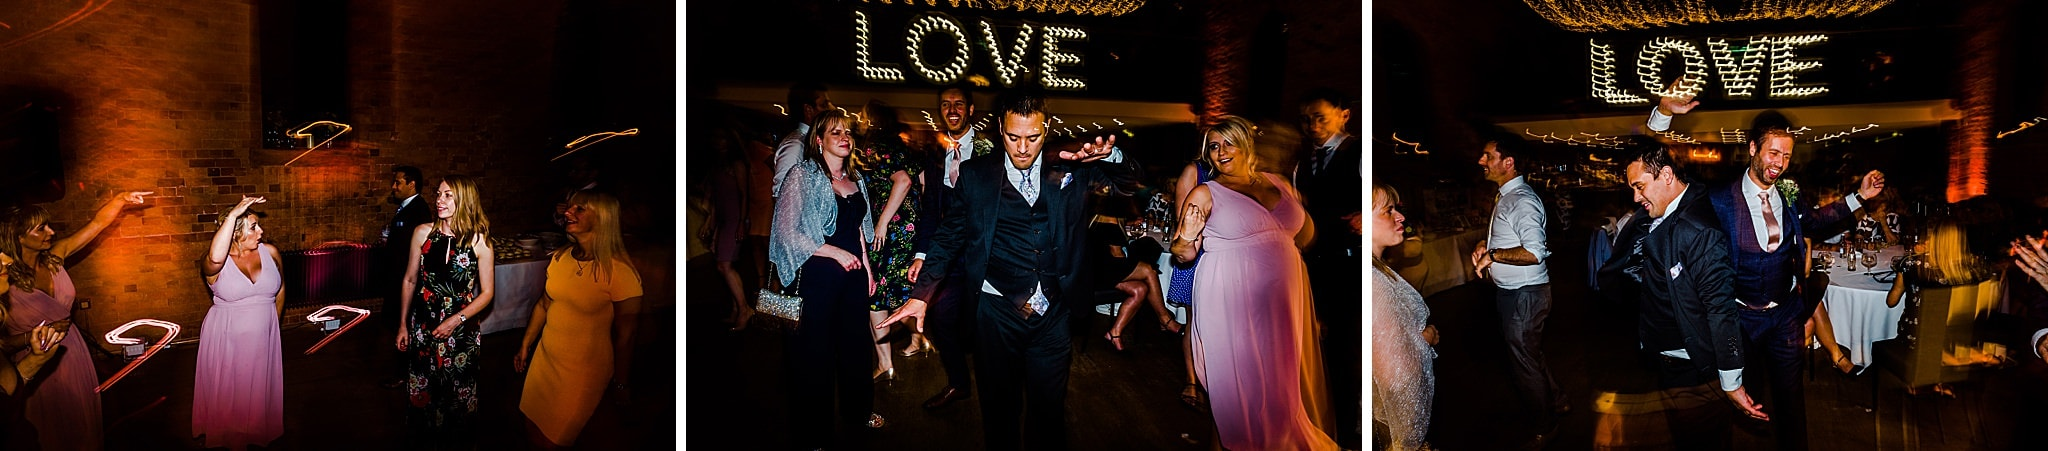 Wedding guests dance on the dance floor at carriage hall